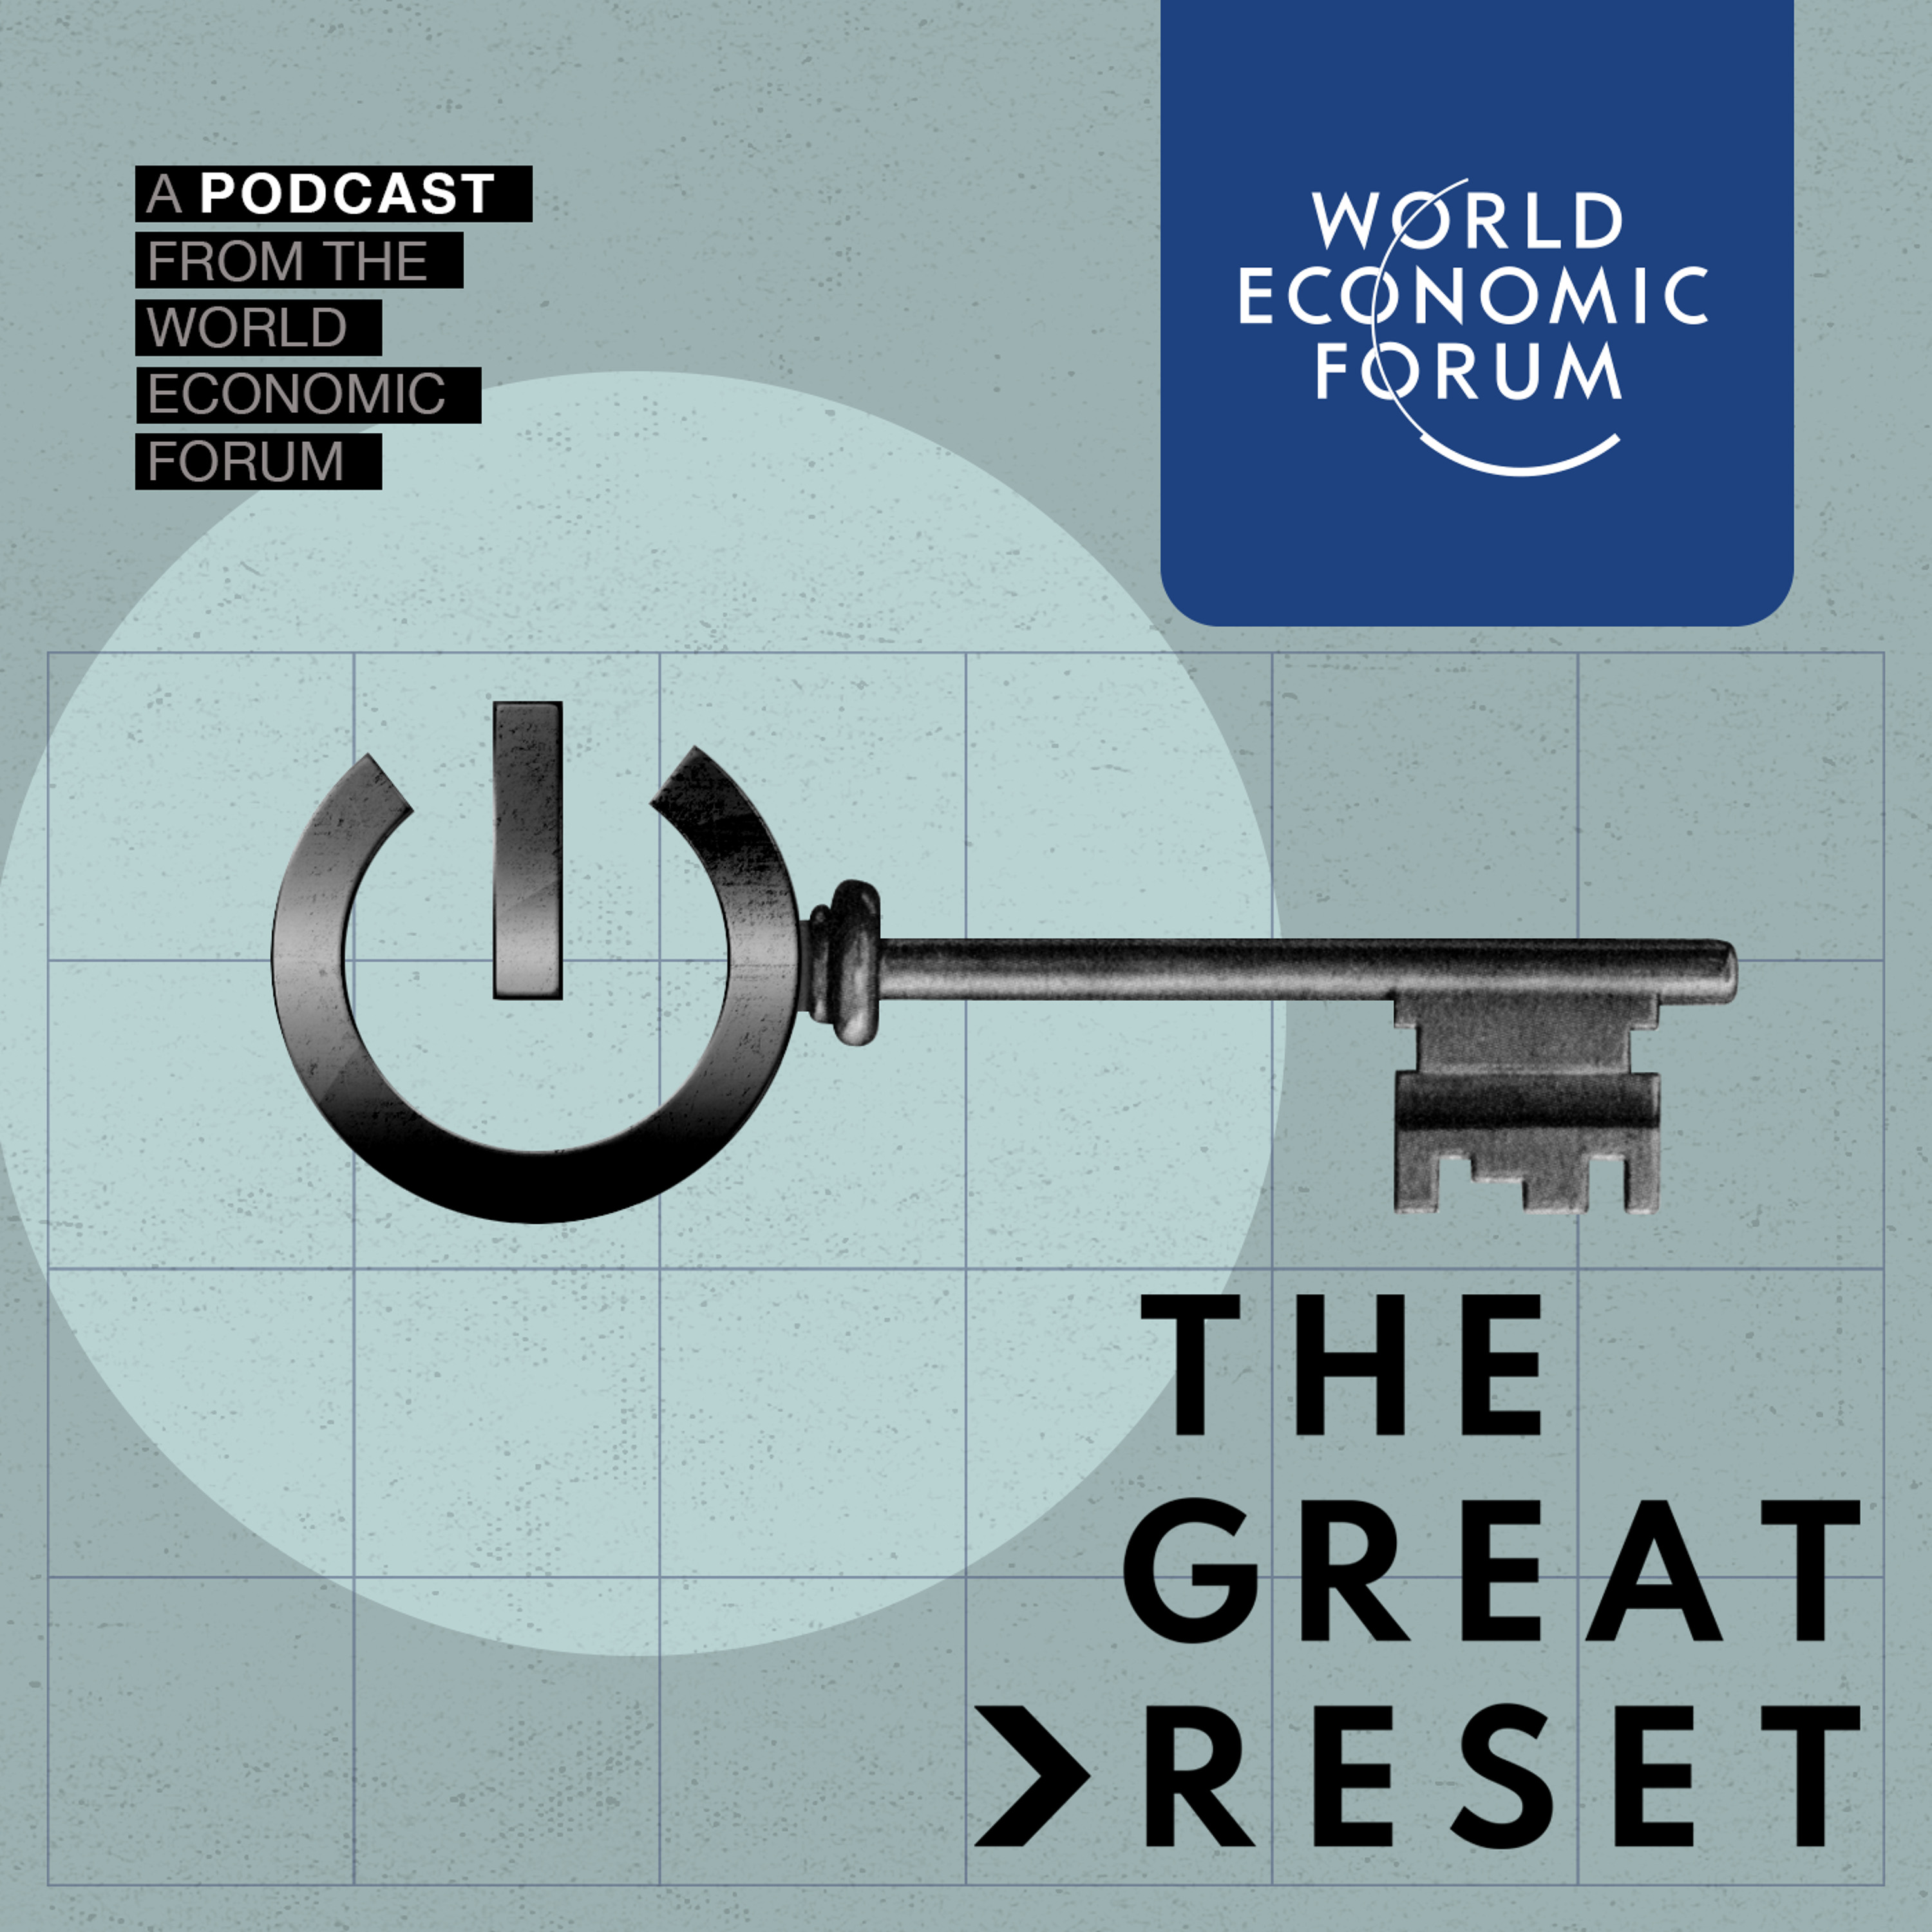 The Great Reset: Sustainable Development Impact Summit - Day 2